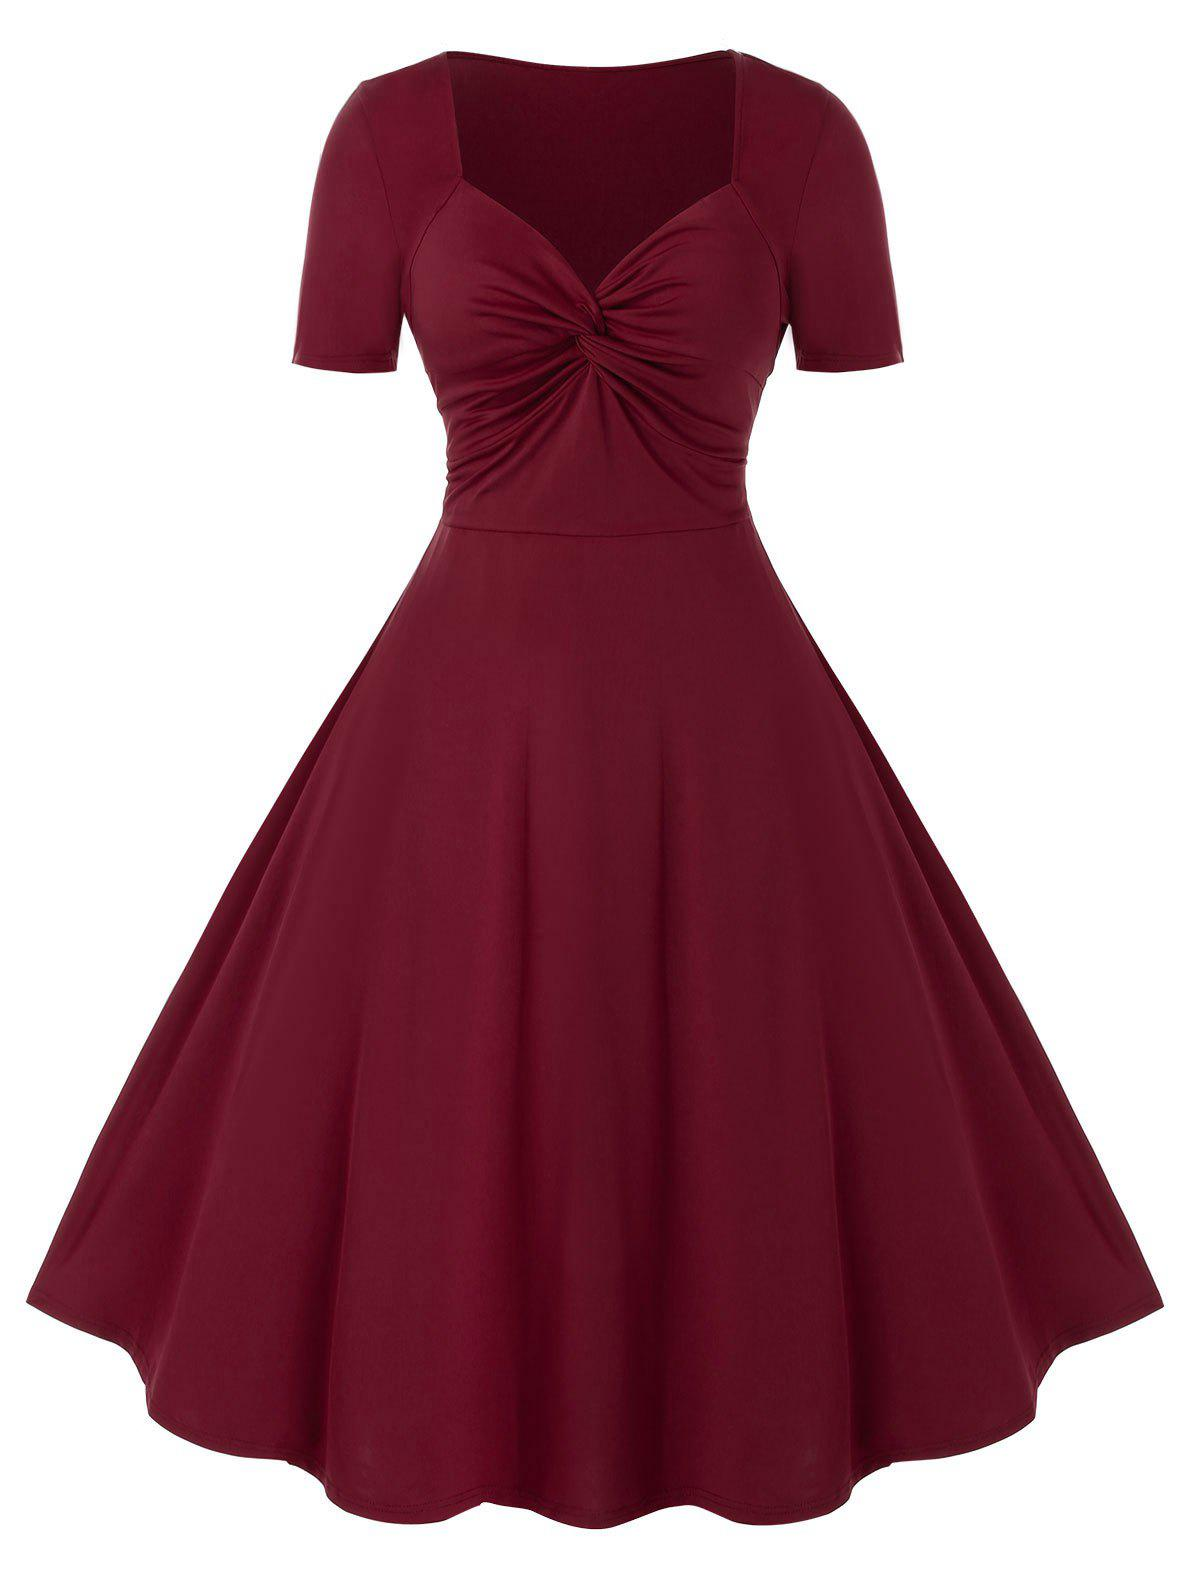 Plus Size Knot Dress - Rouge Lave 5X